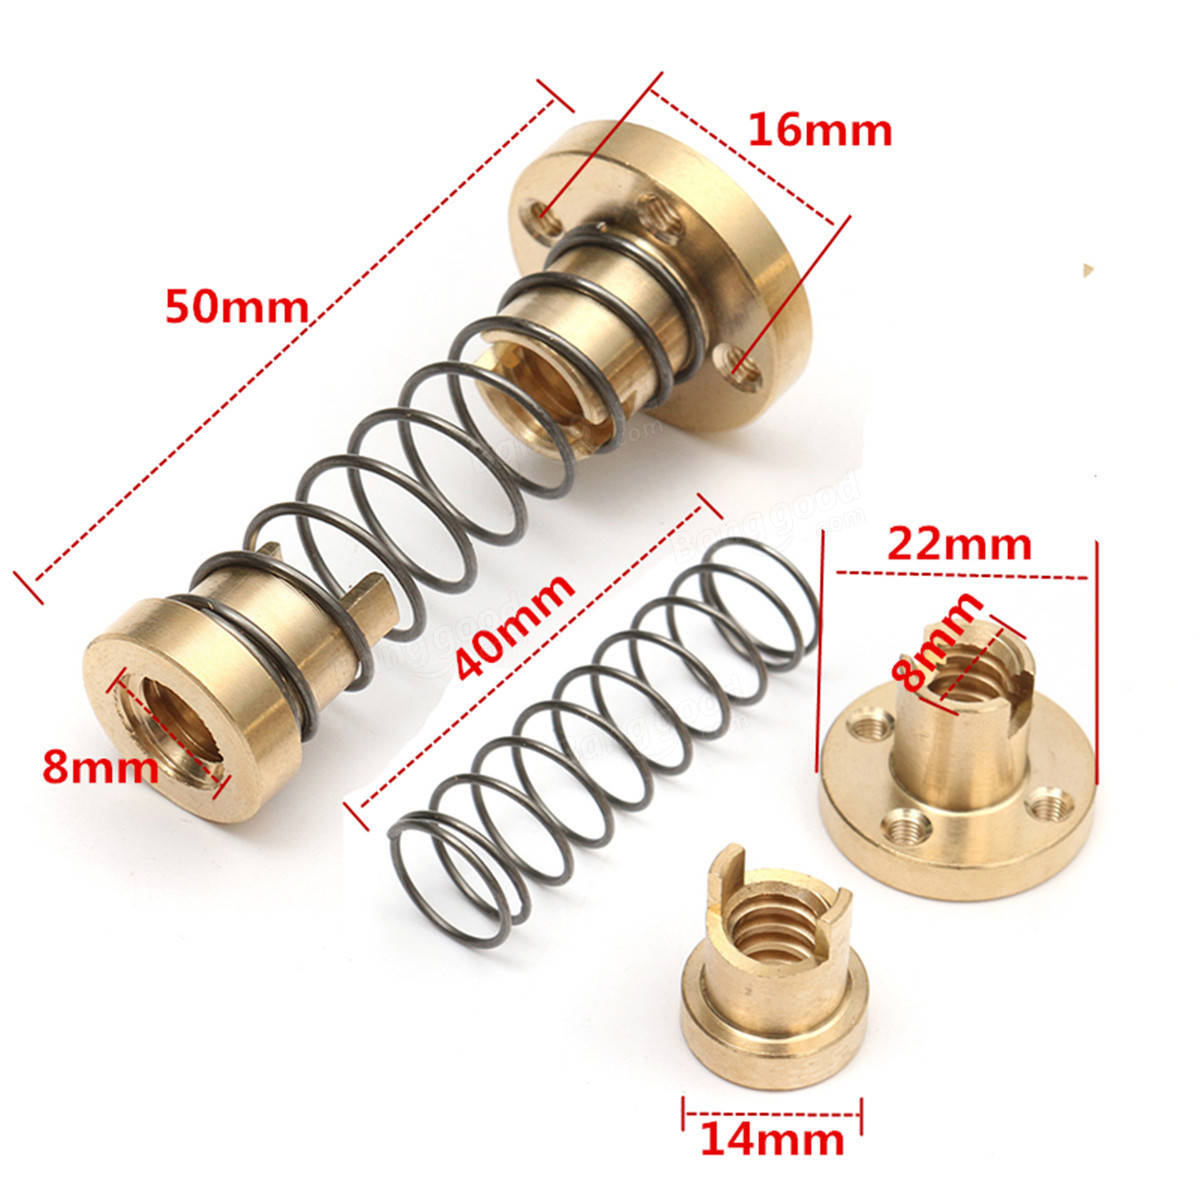 T8 Anti-Backlash Spring Loaded Nut For 2mm / 8mm Acme Threaded Rod Lead Screws